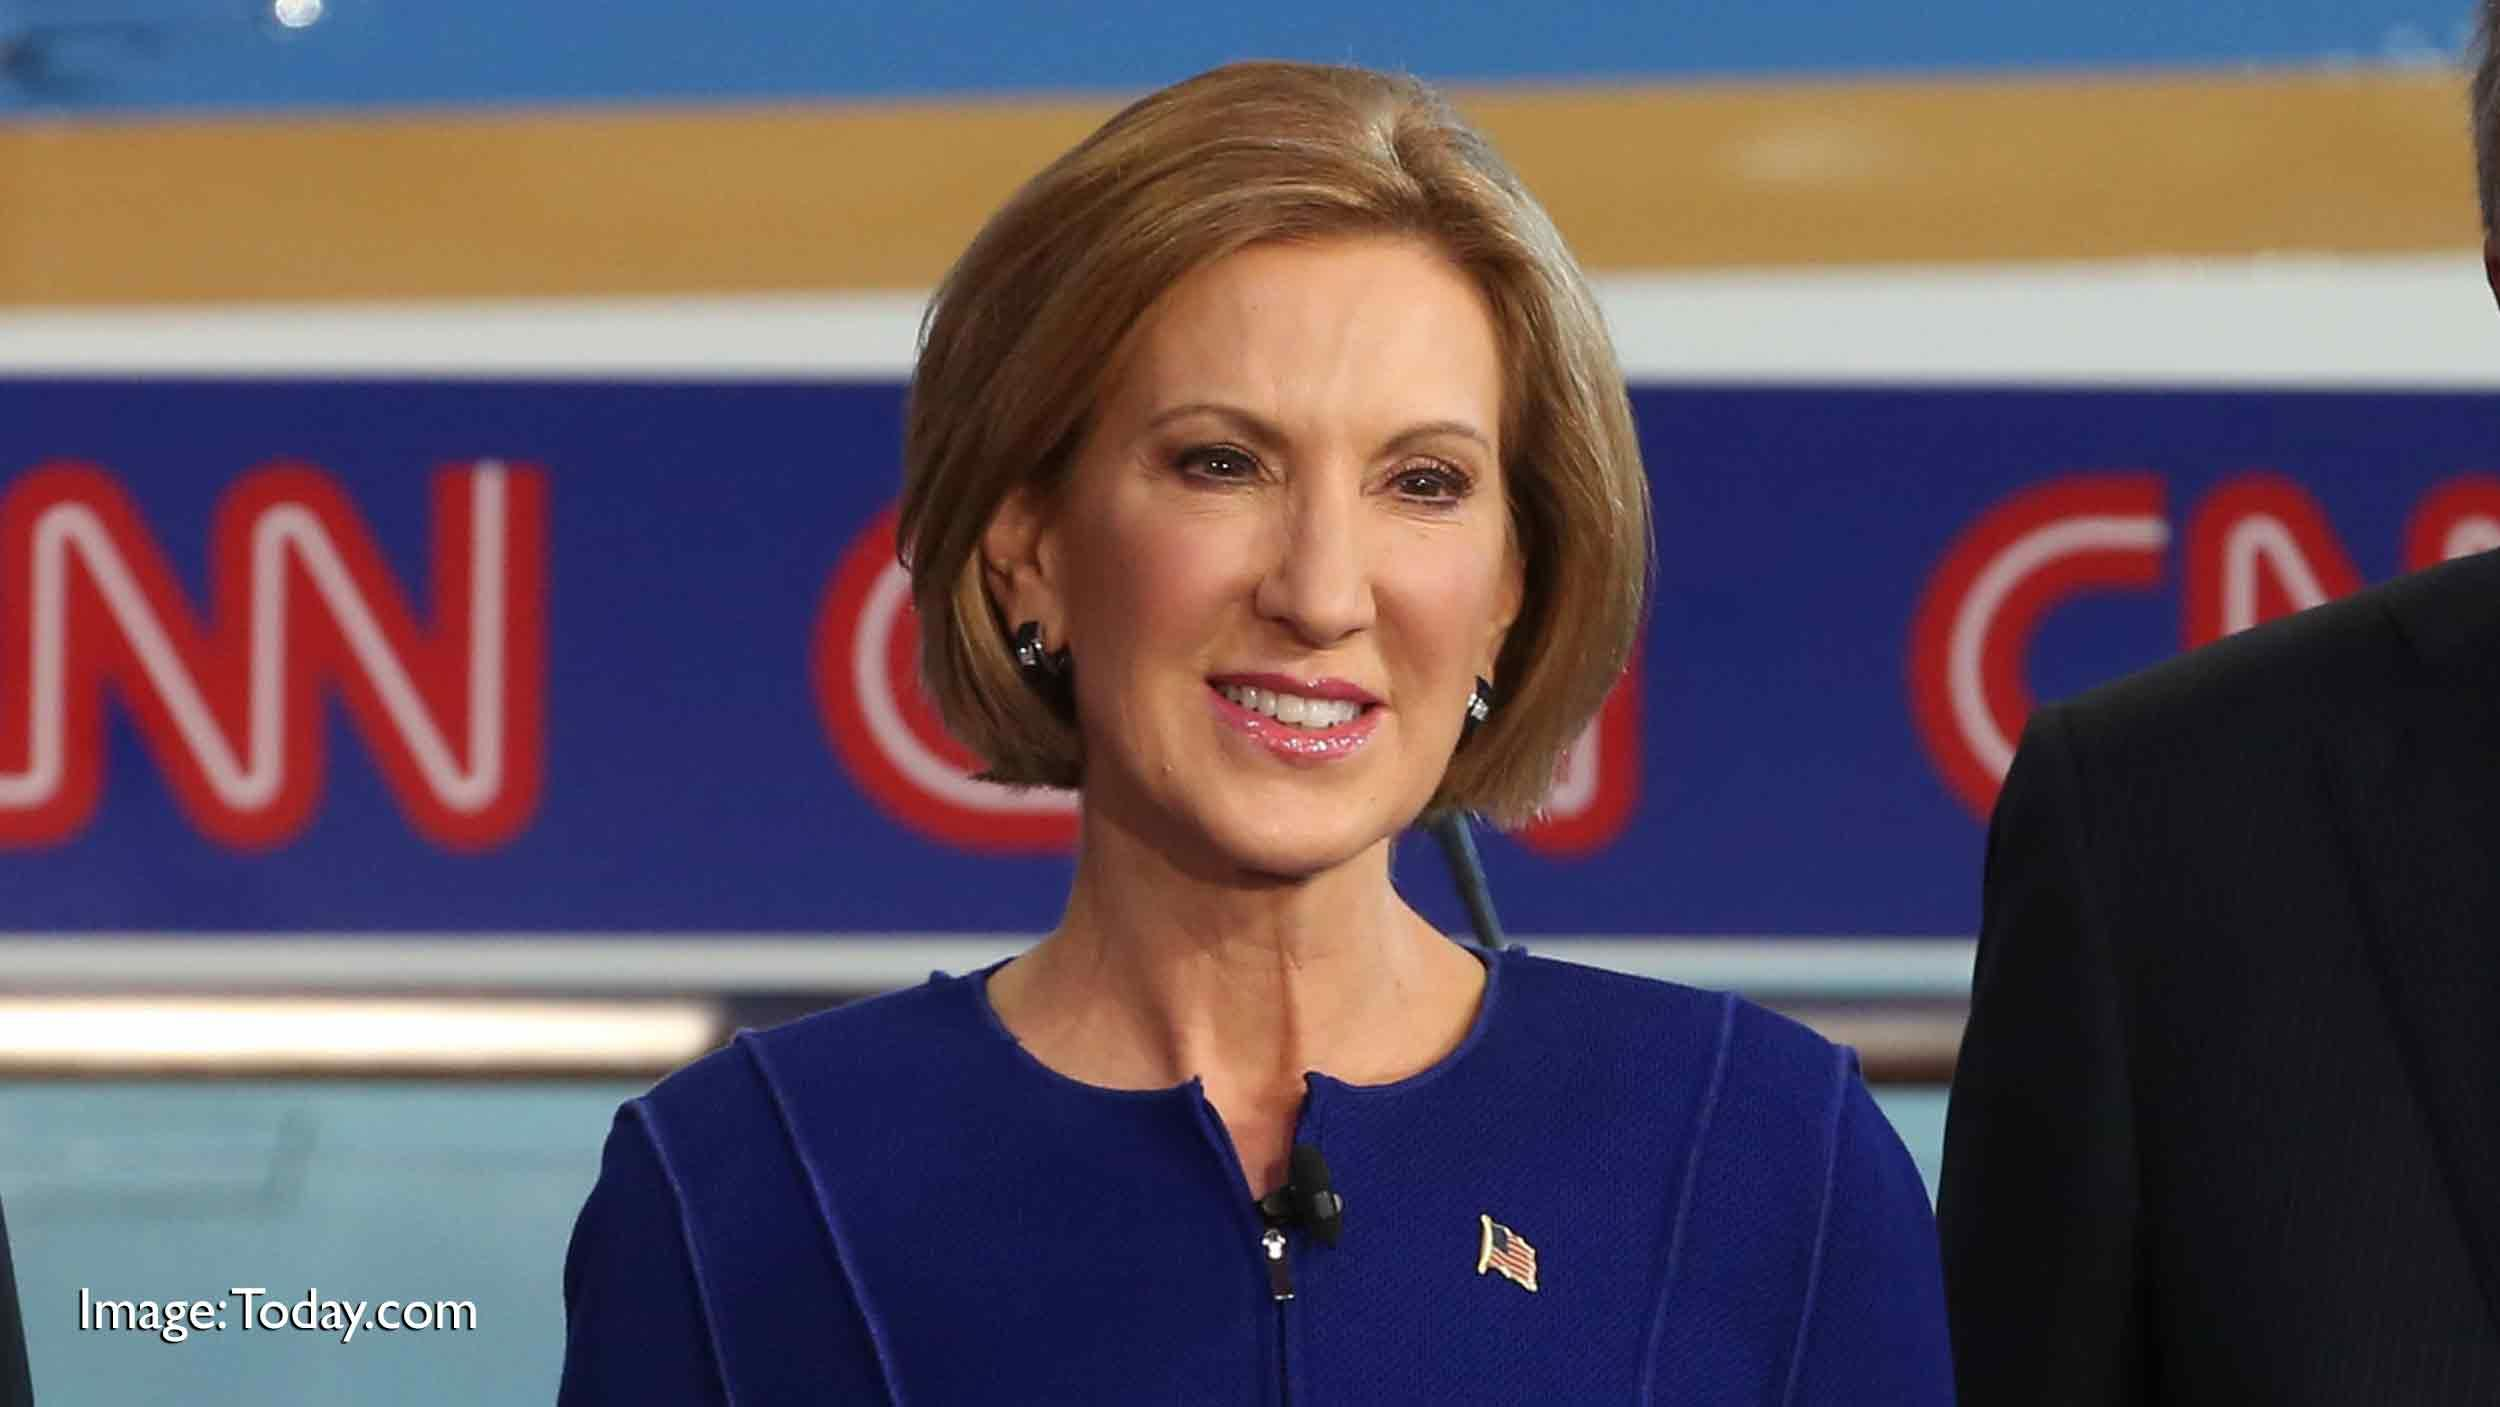 Politics: Carly Fiorina Drops Out Of Presidential Race